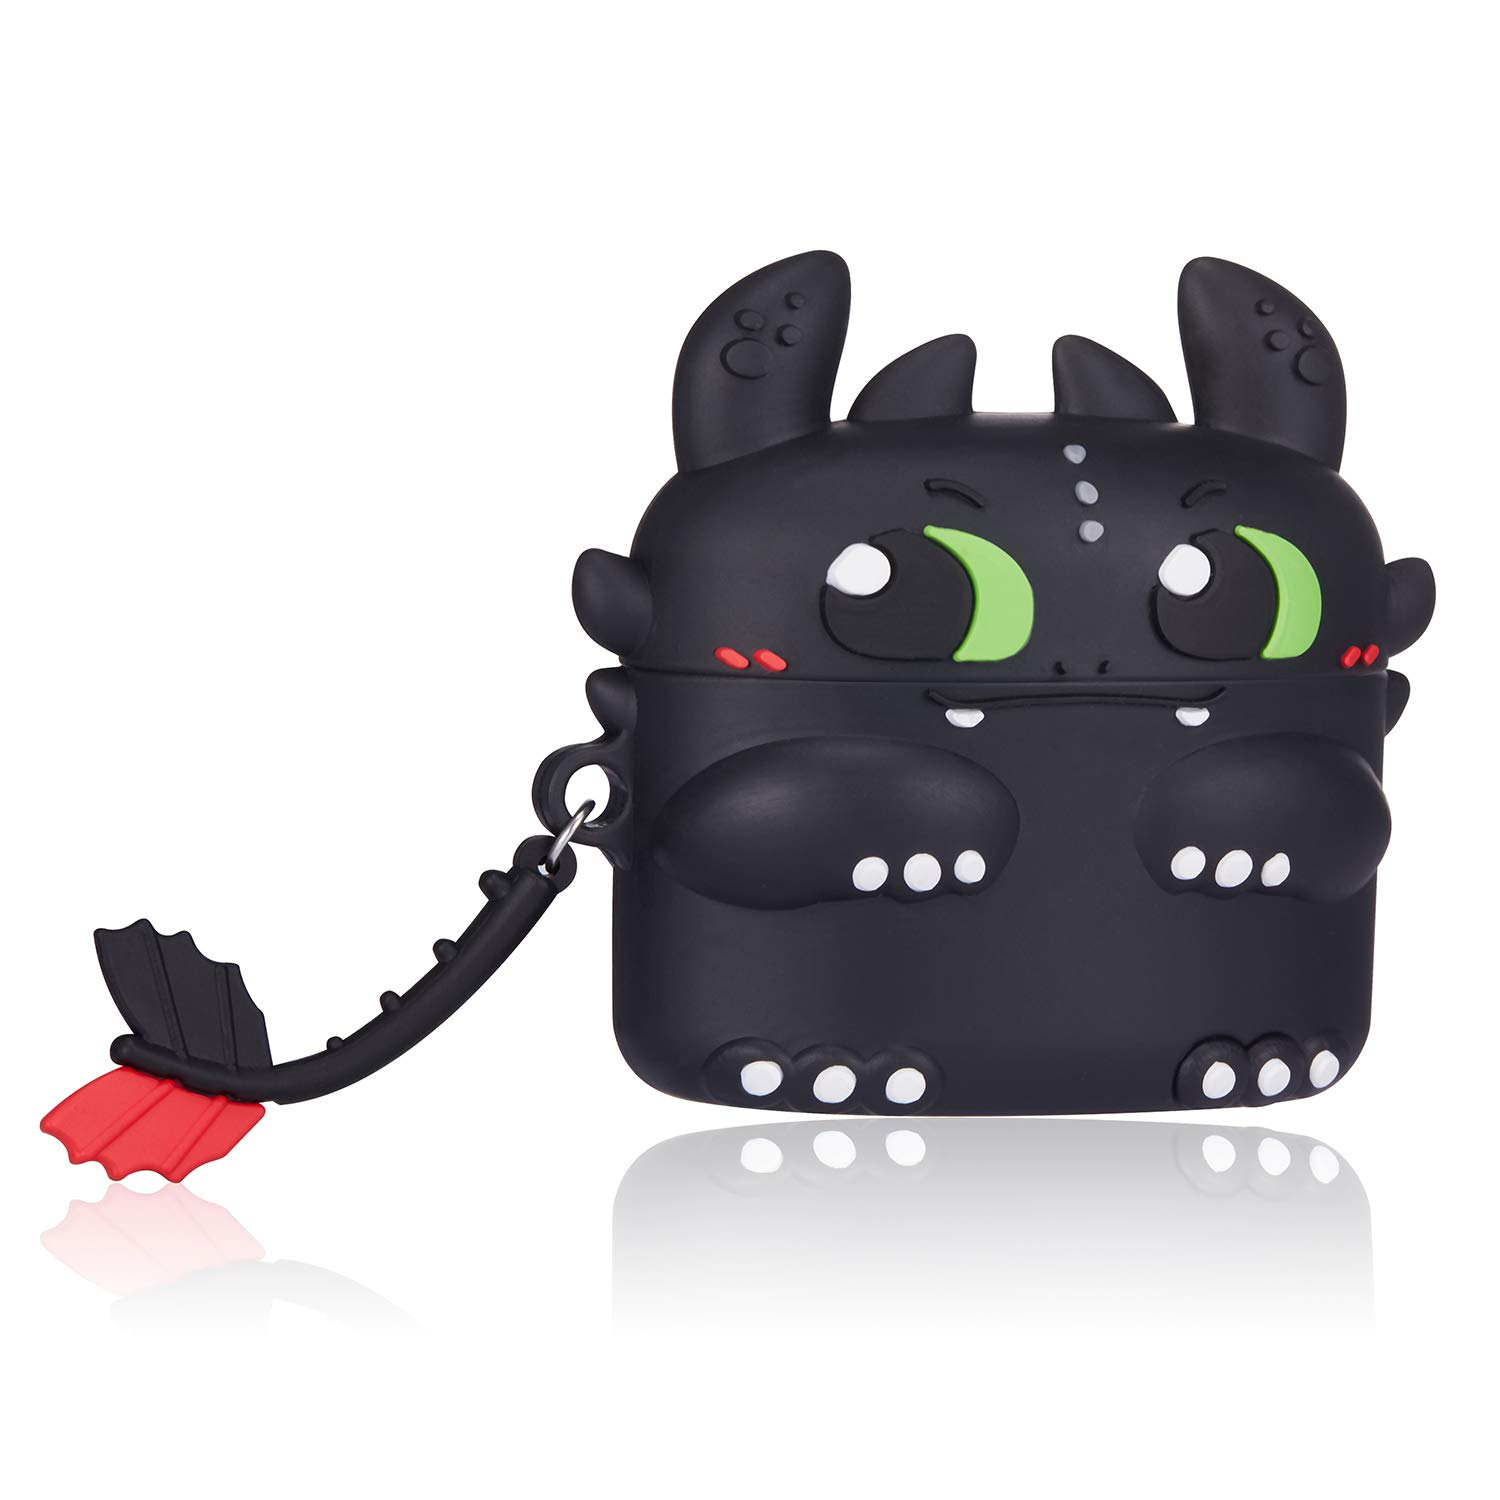 Gift-Hero Black Toothless Case for Airpods Pro/for Airpods 3, Cartoon Funny Cute Design for Girls Boys Kids, Unique Carabiner Protective Fun Fashion Character Skin Soft Silicone Cover for Air pods 3